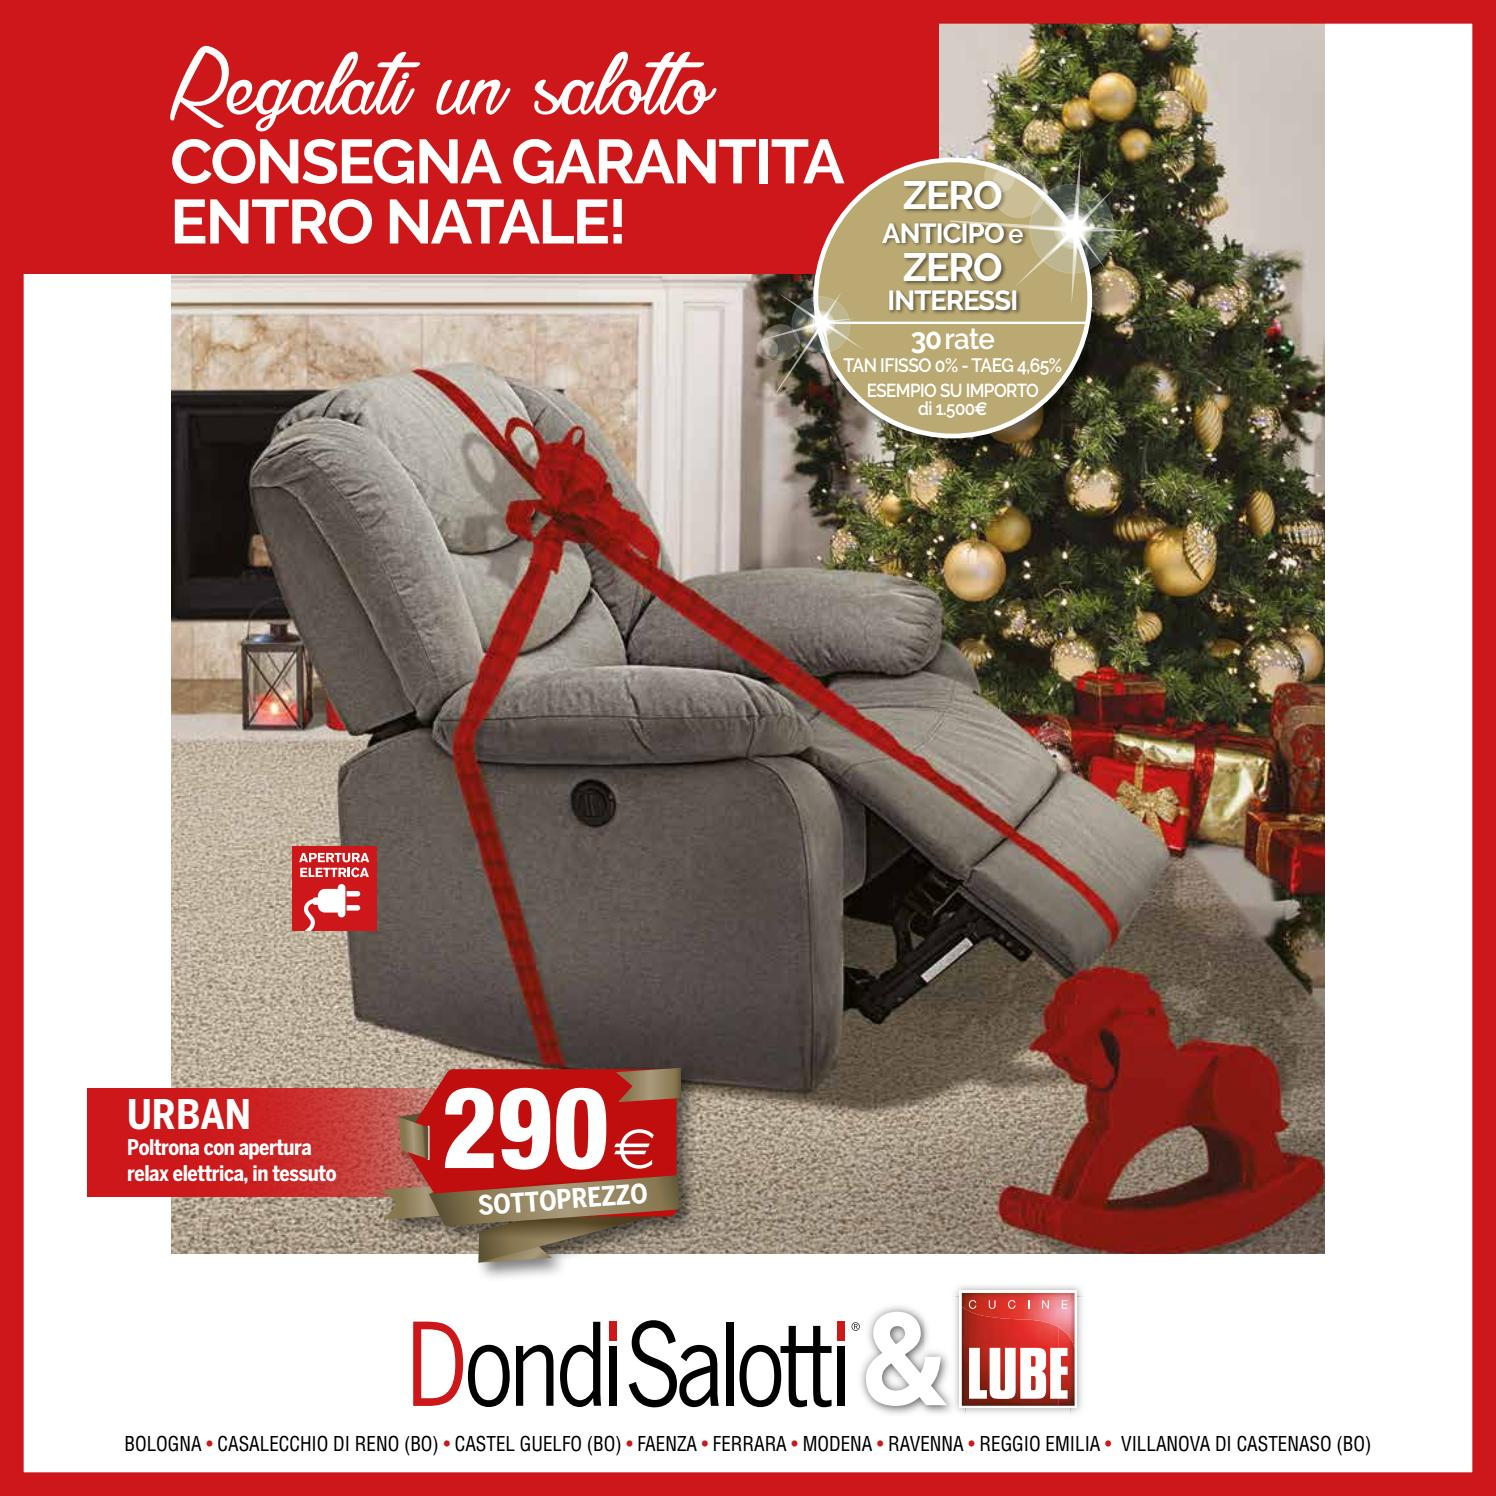 Dondi Salotti Modena Catalogo.Dondi Salotti Natale 2017 By Michele Travagli Issuu